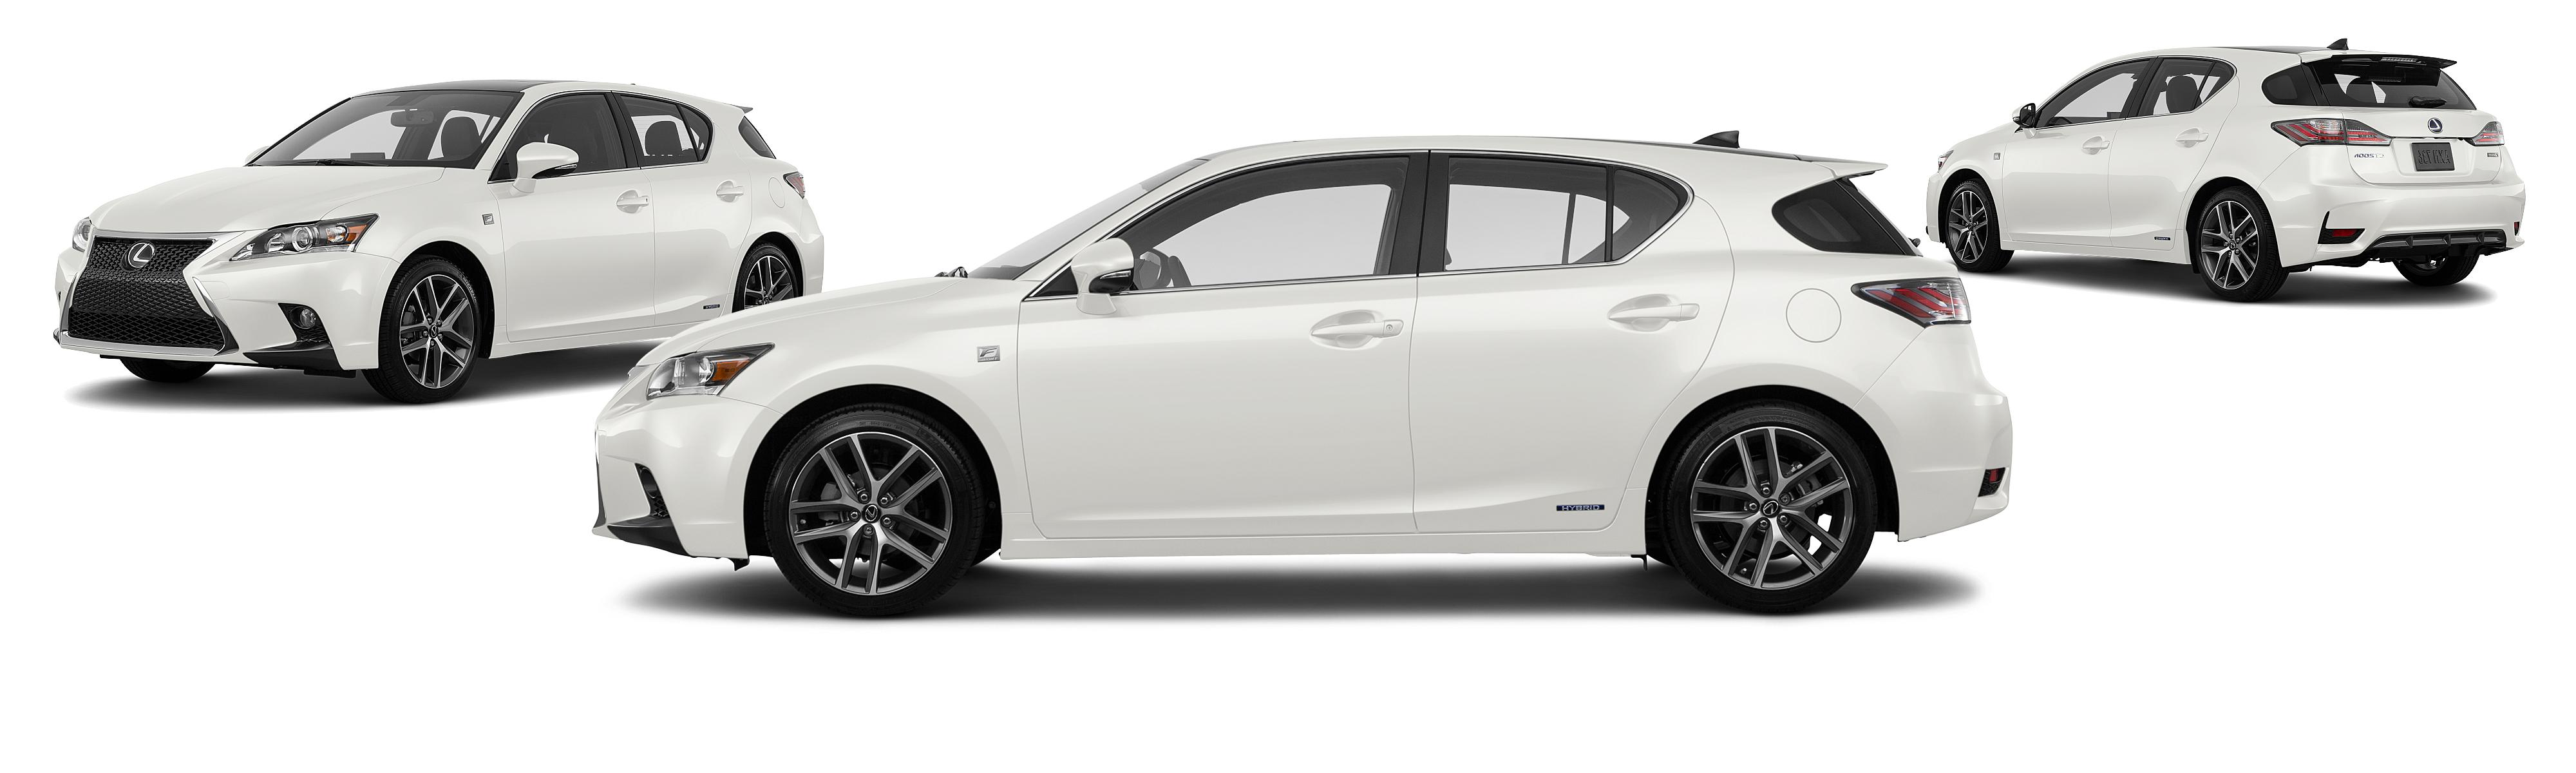 2017 Lexus CT 200h 4dr Hatchback Research GrooveCar